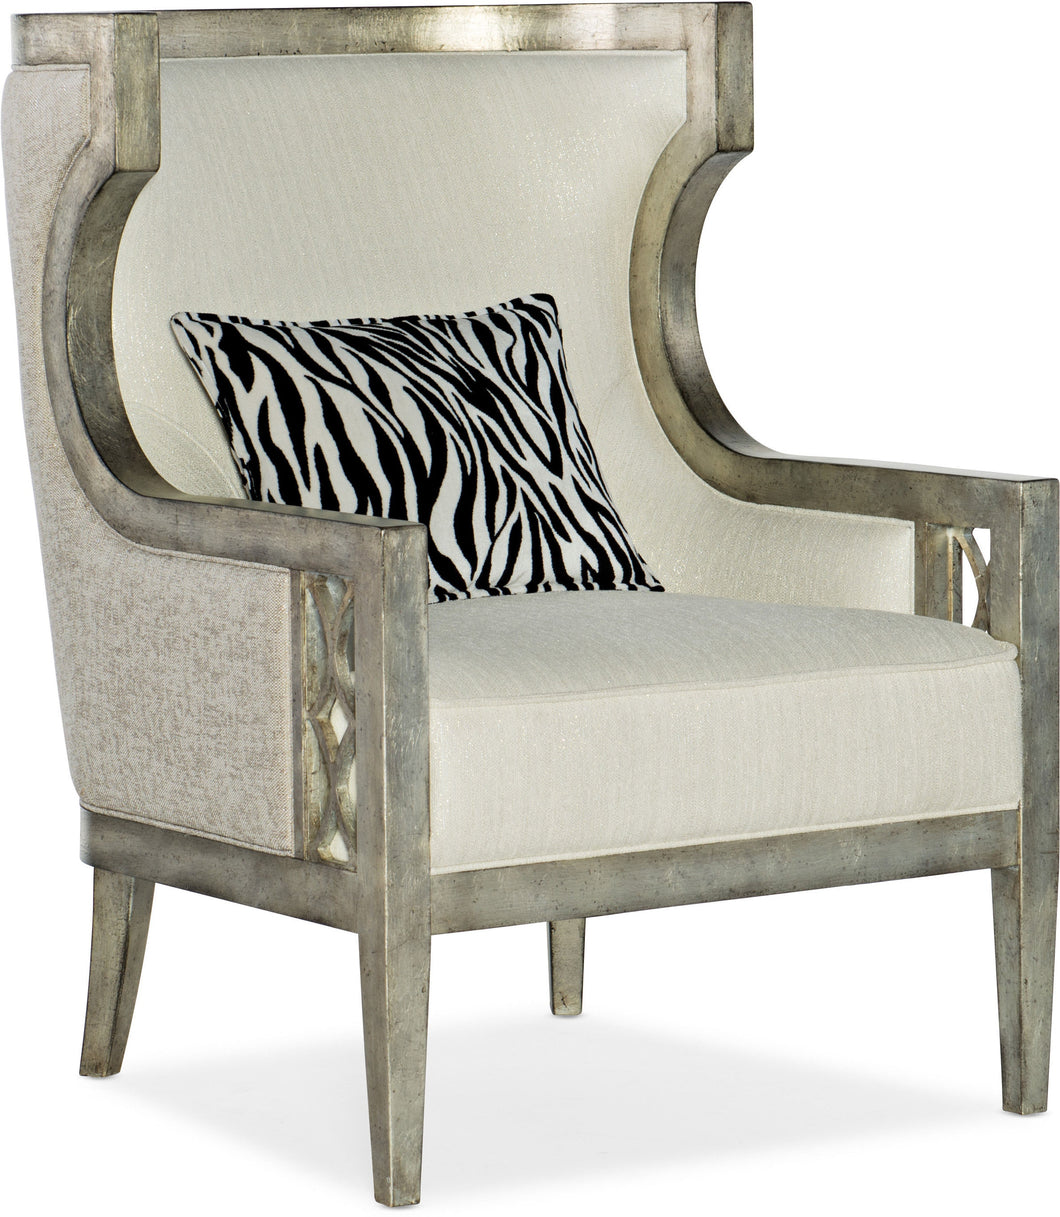 Hooker Furniture Living Room Sanctuary Debutant Wing Chair - Dream art Gallery